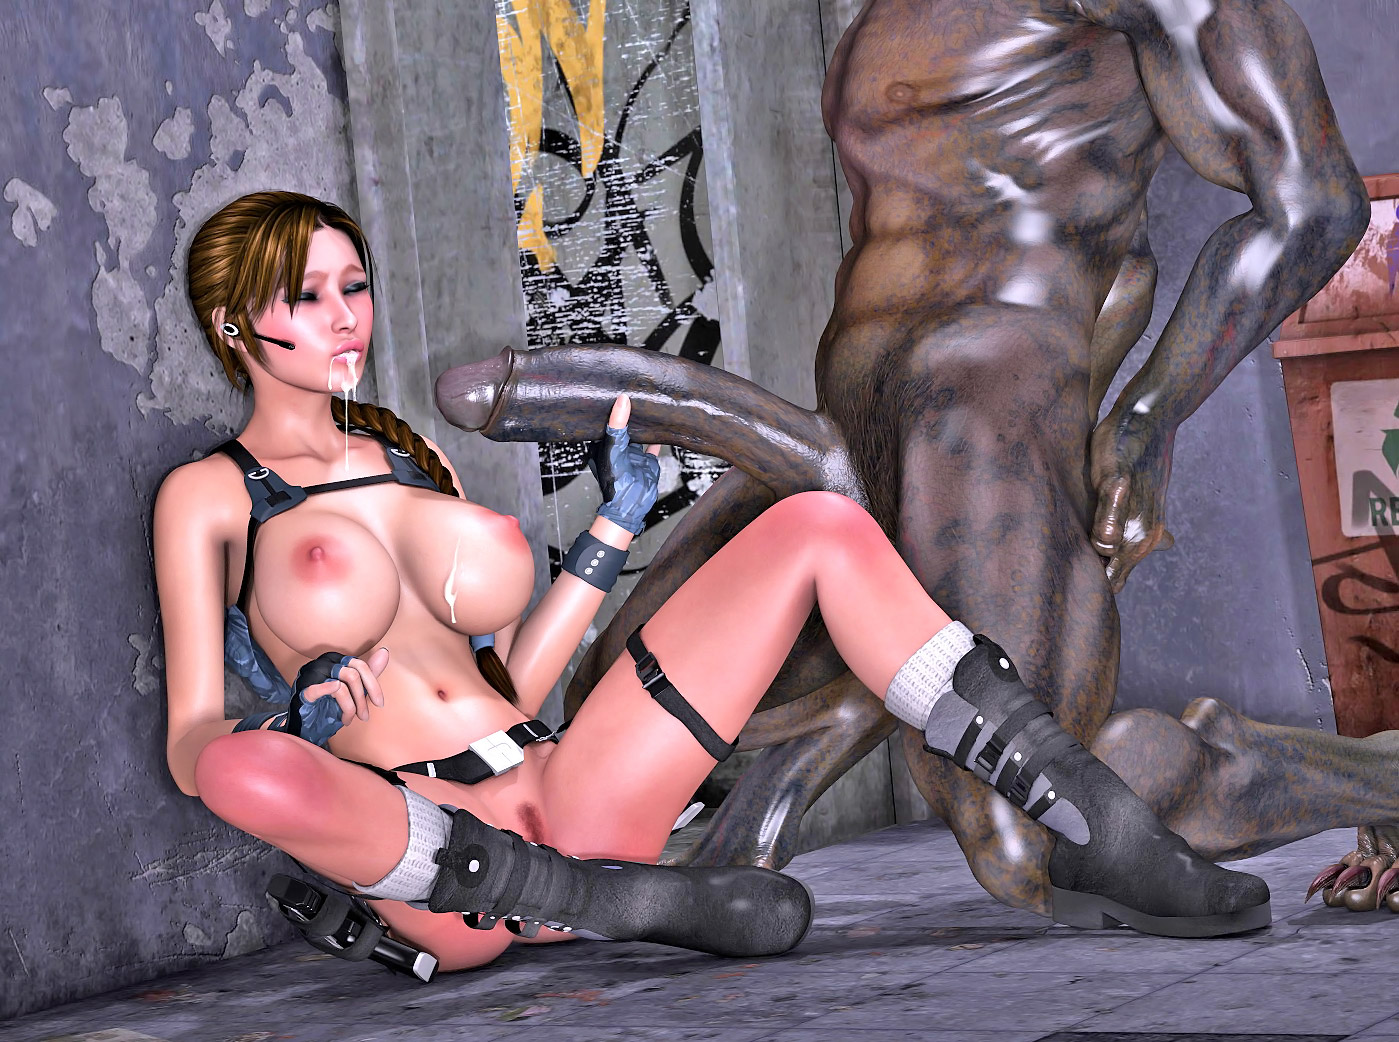 Sexy tomb raider big boobs sex nude tube